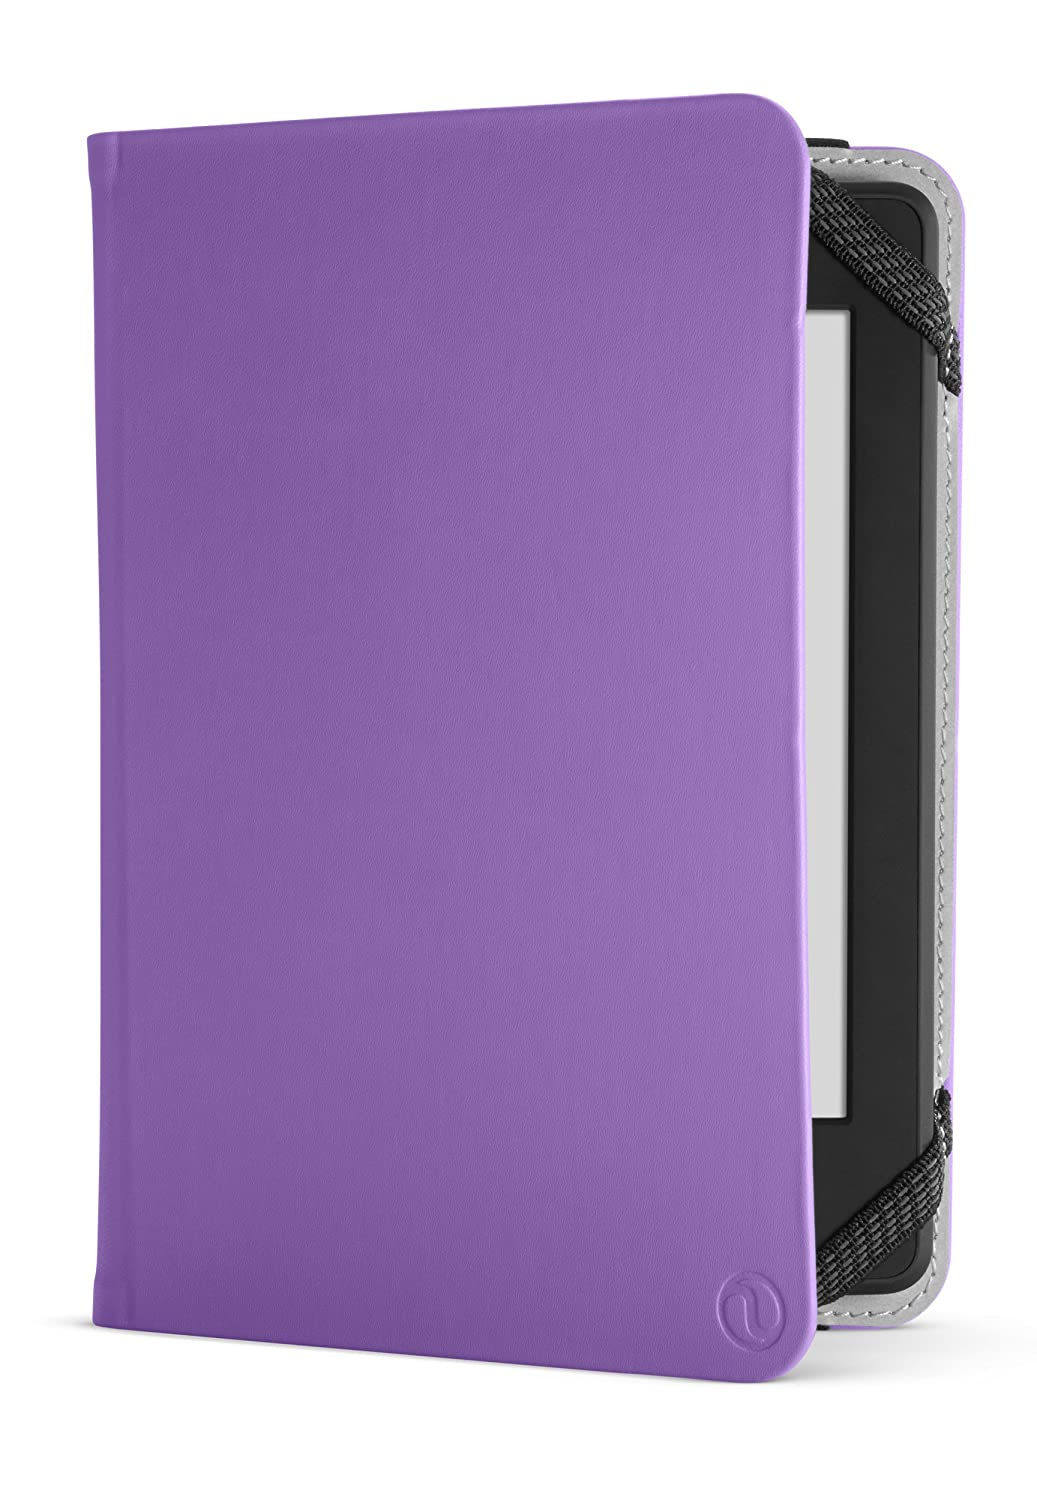 NuPro Amazon Kindle Paperwhite Case - Lightweight Durable Slim Folio Cover (fits Kindle and Kindle Paperwhite), Purple